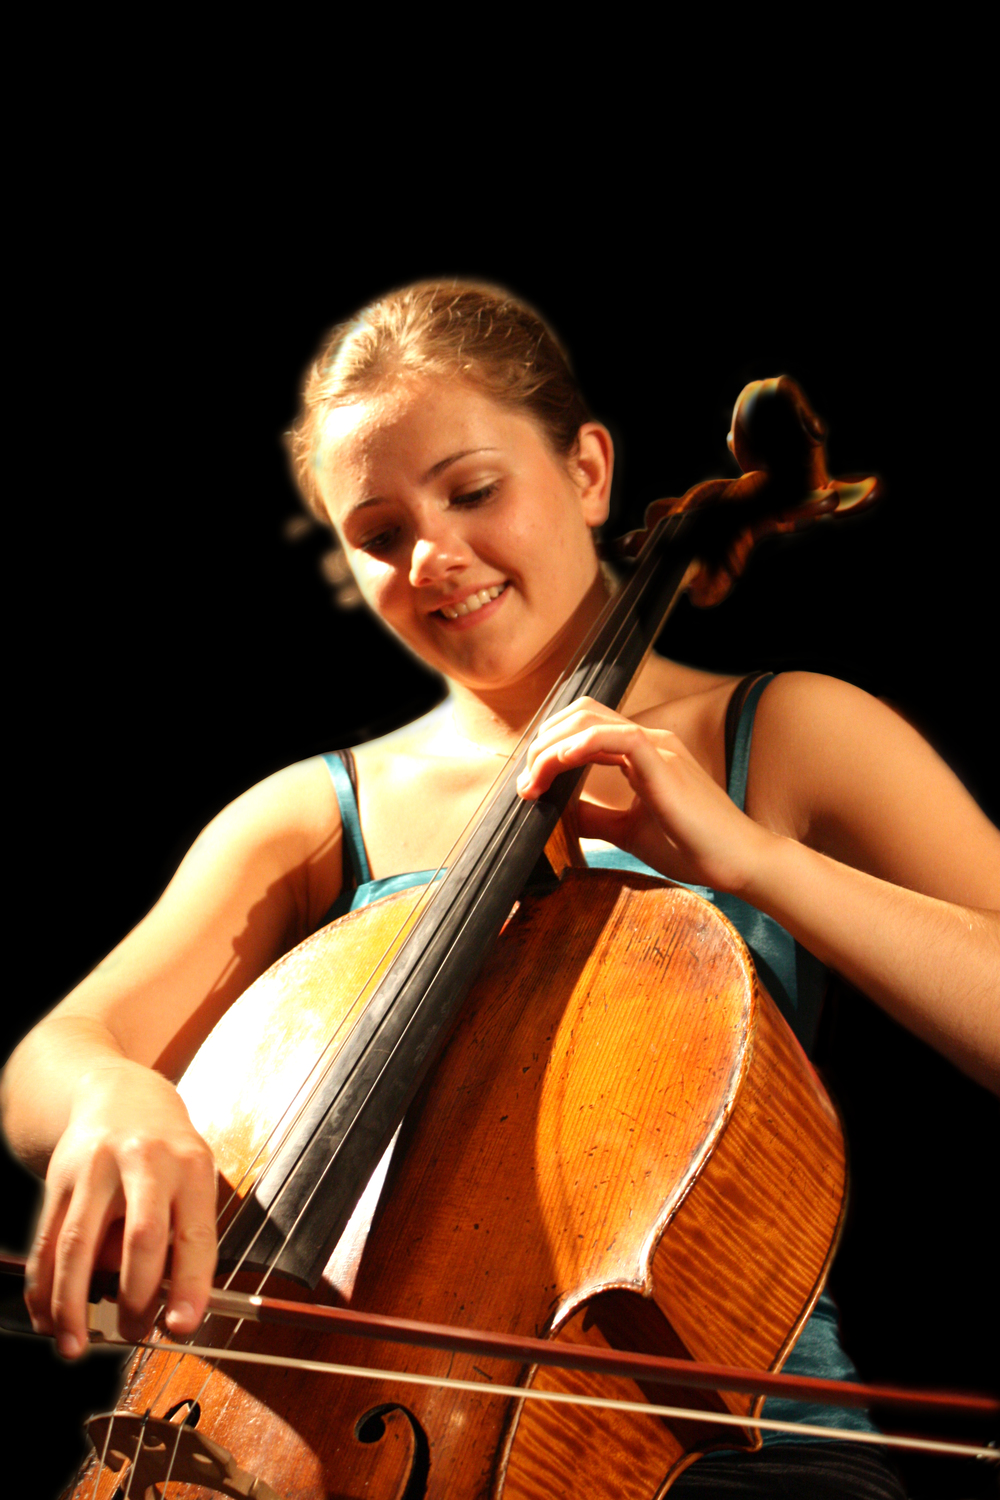 One of the young musicians performing this year, Frida Fredrikke Waaler Wærvågen.